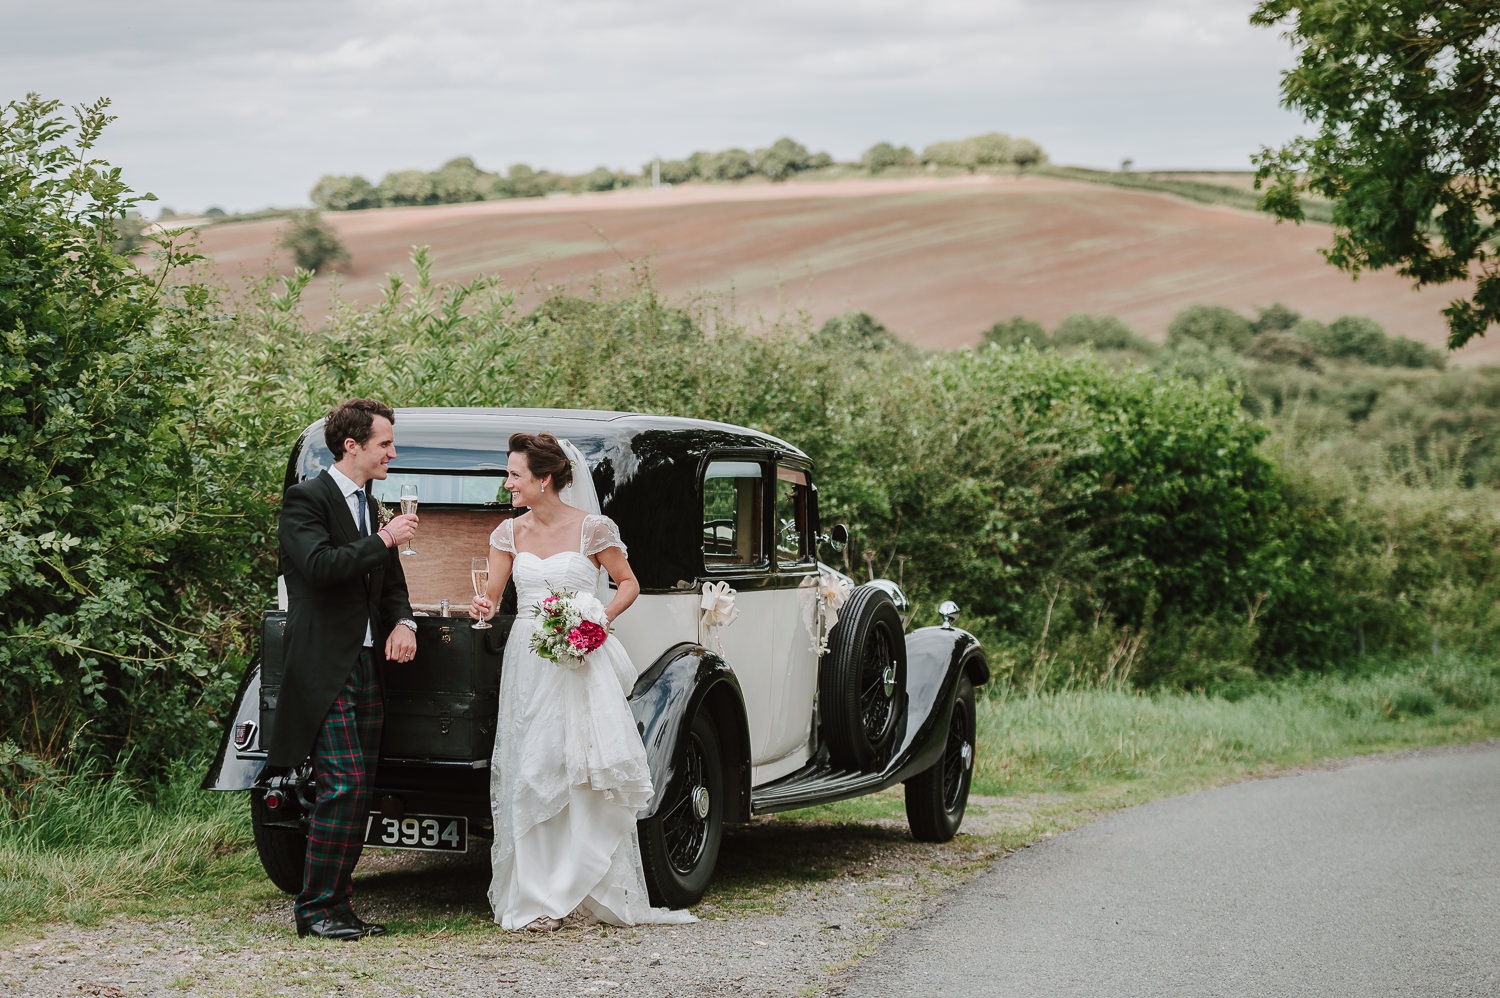 Charli & Will's Rustic, Relaxed Rutland Wedding